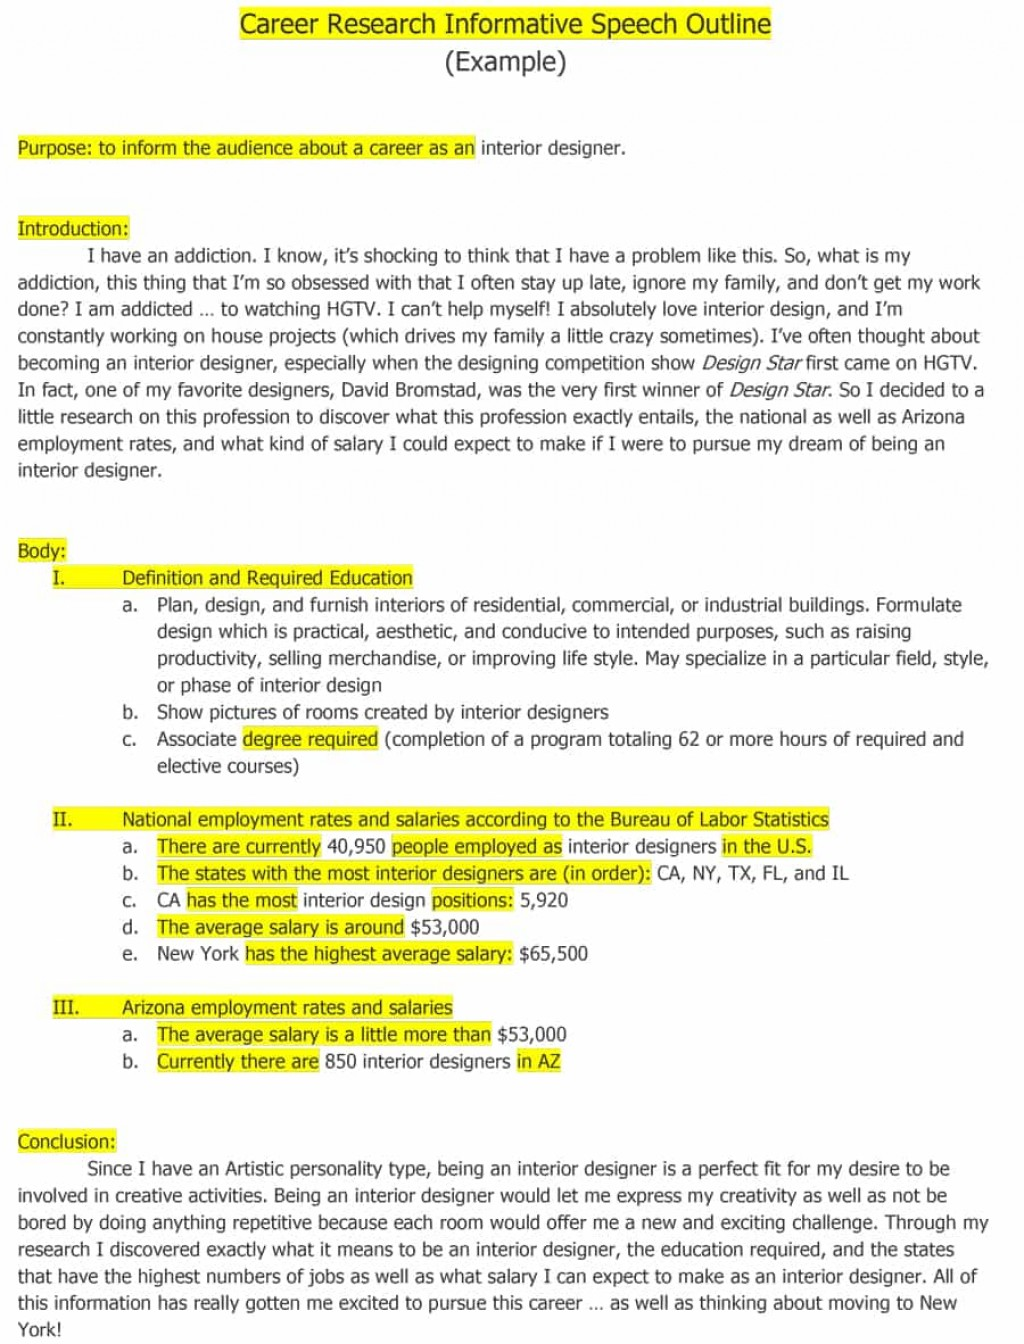 018 Informative Speech Outline What Is An Essay Top Example The Main Purpose Of Large